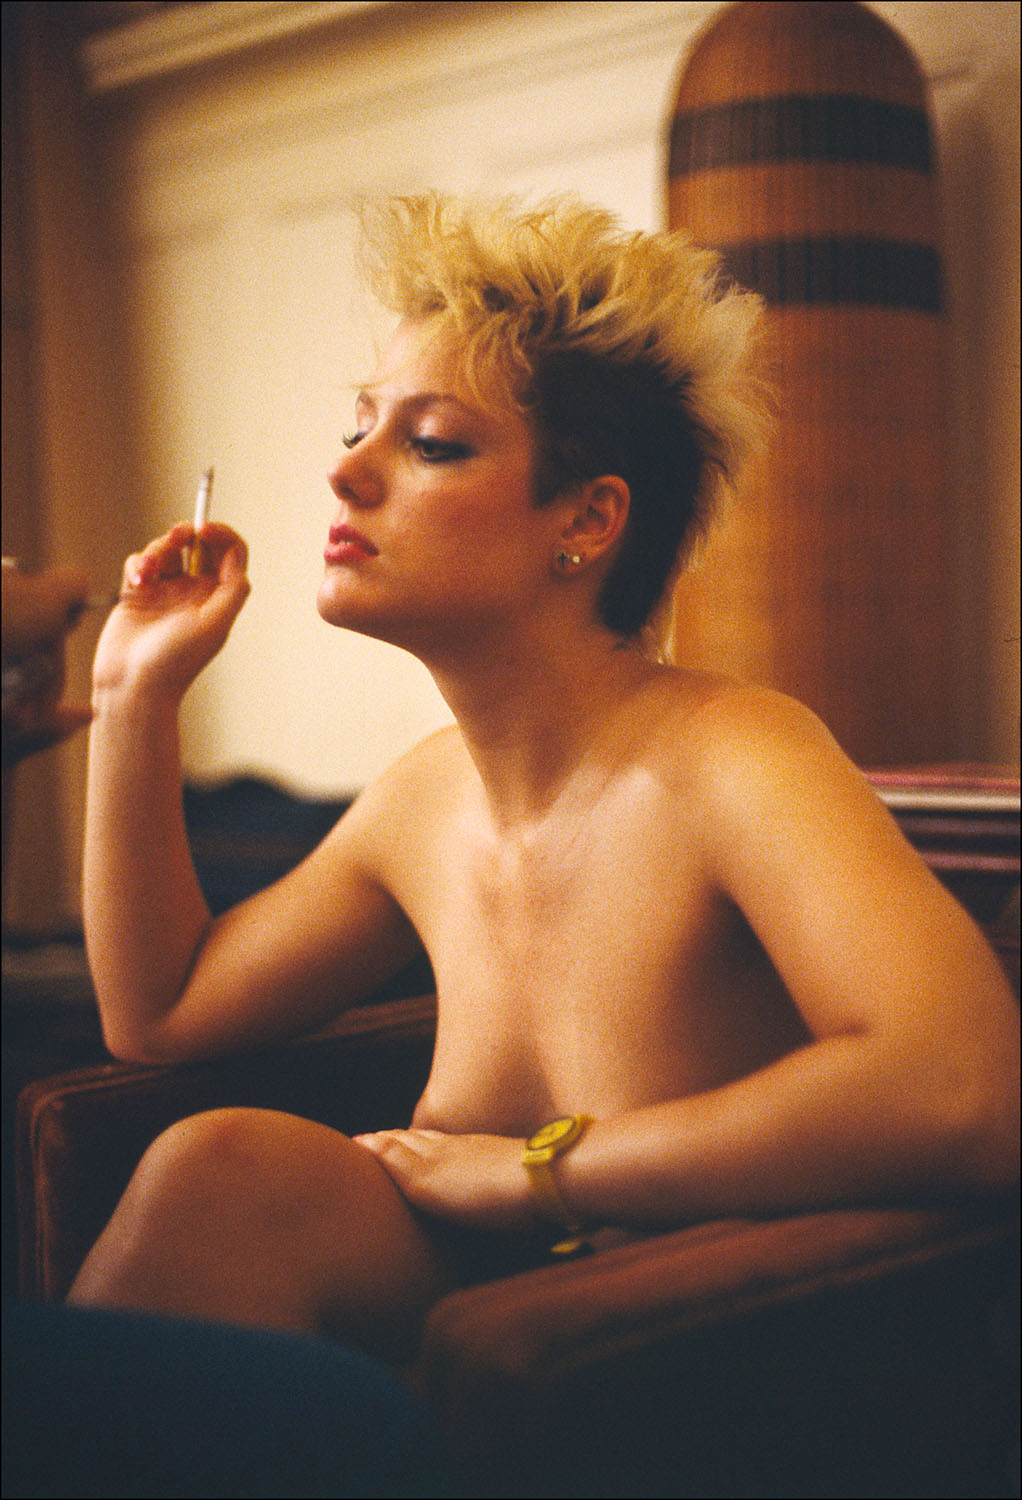 Jeanna Fine in Firebox, 1986